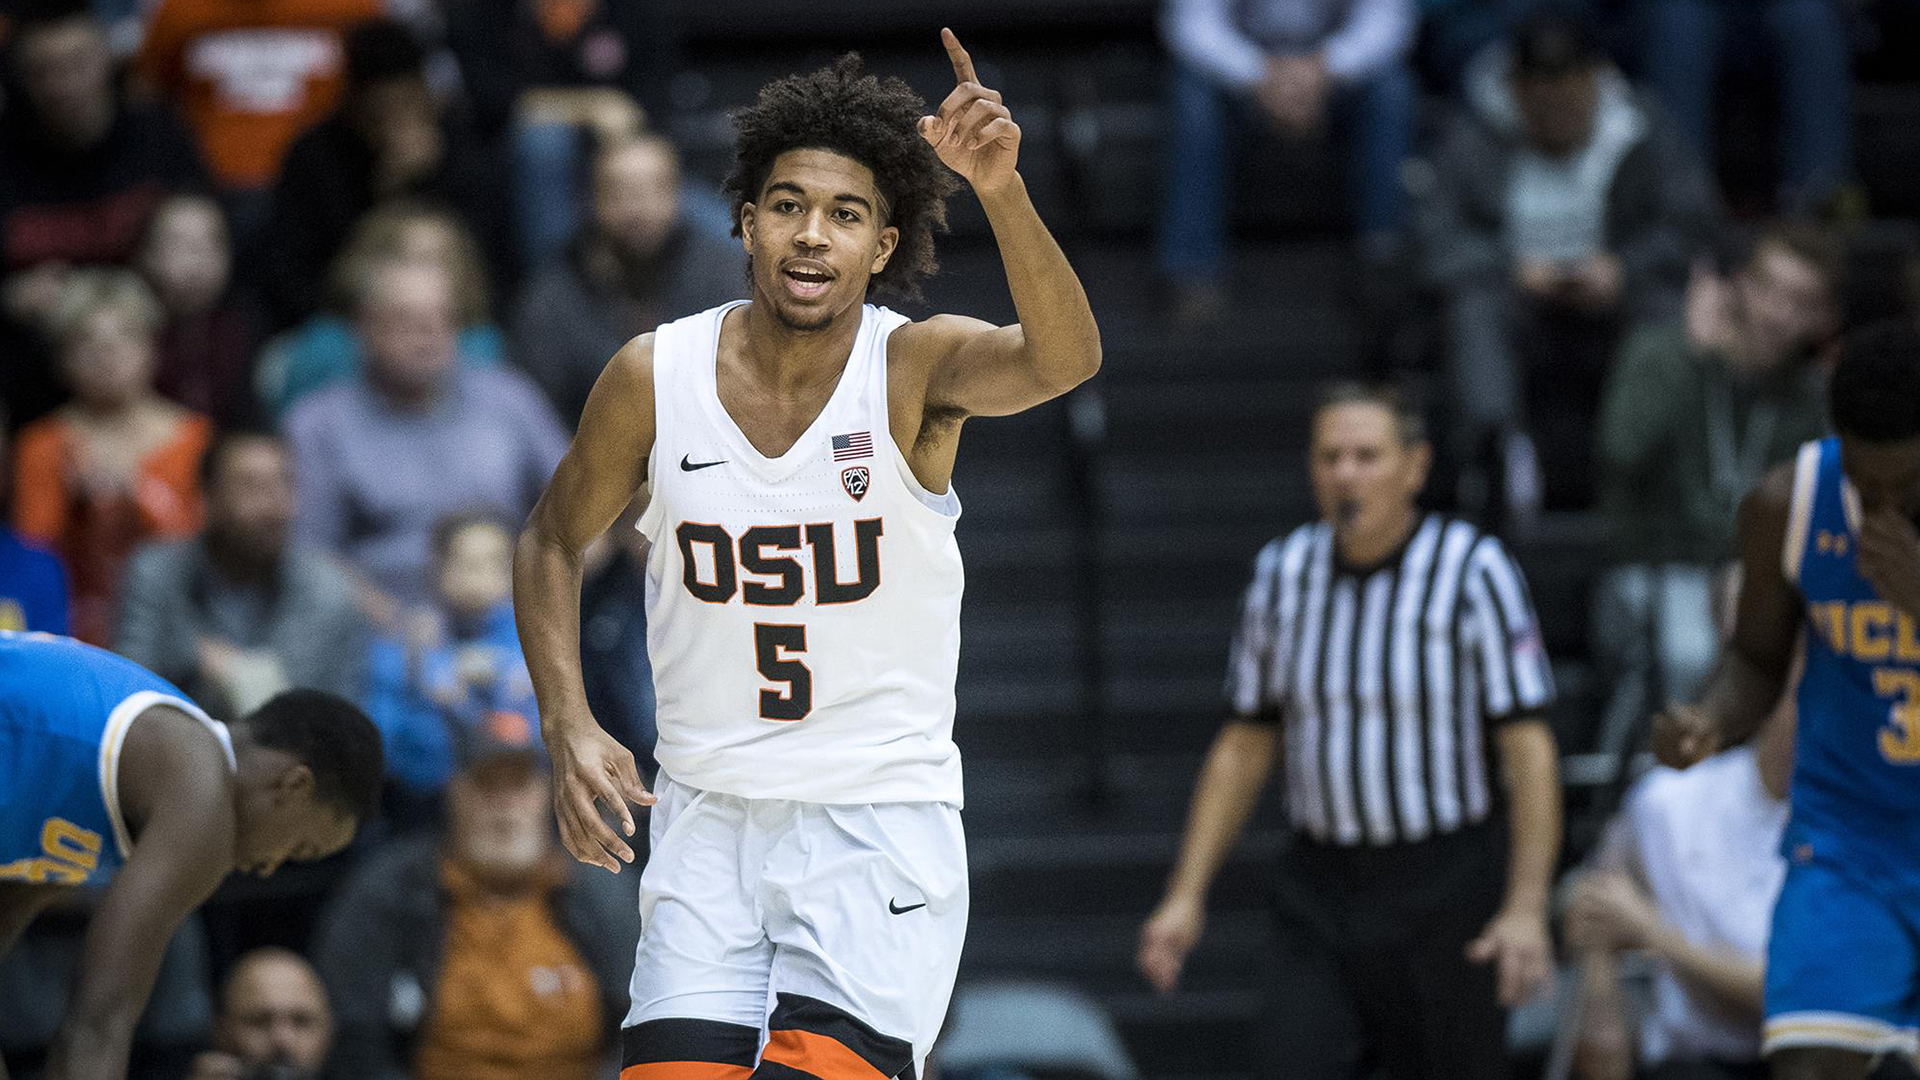 beavers announce non-conference schedule - oregon state university